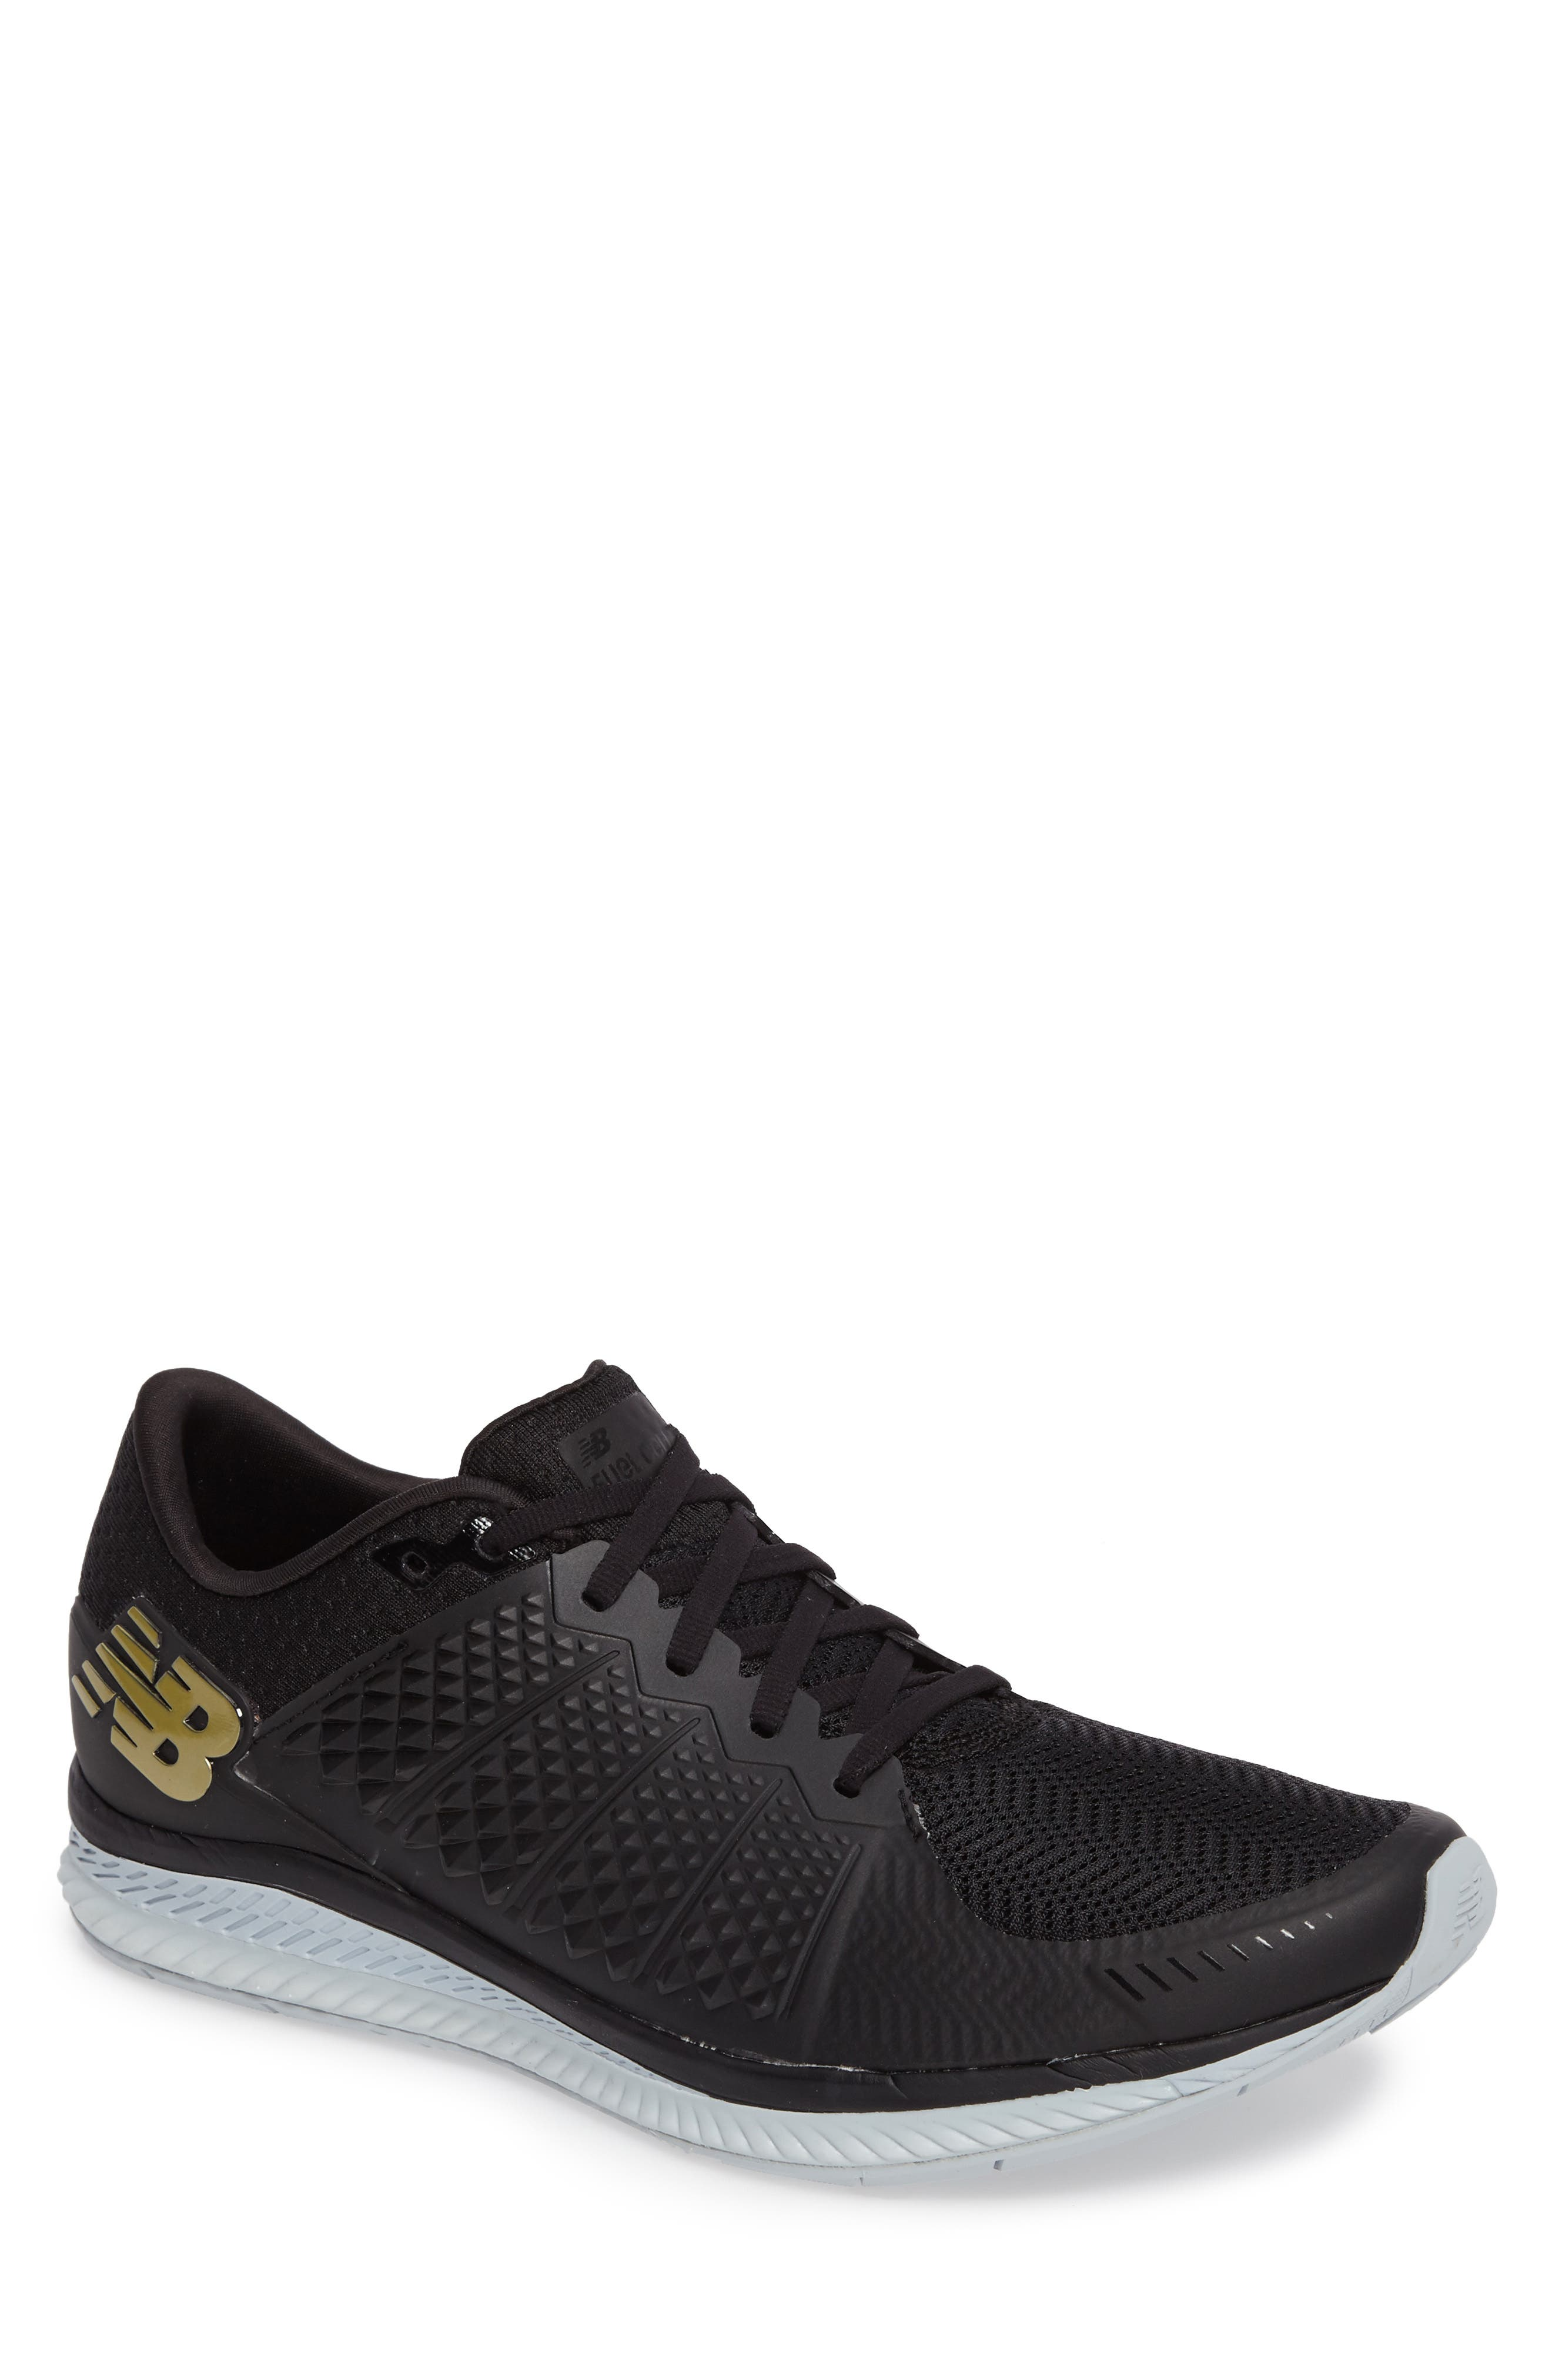 Vazee Fuel Cell Running Shoe,                         Main,                         color, Black